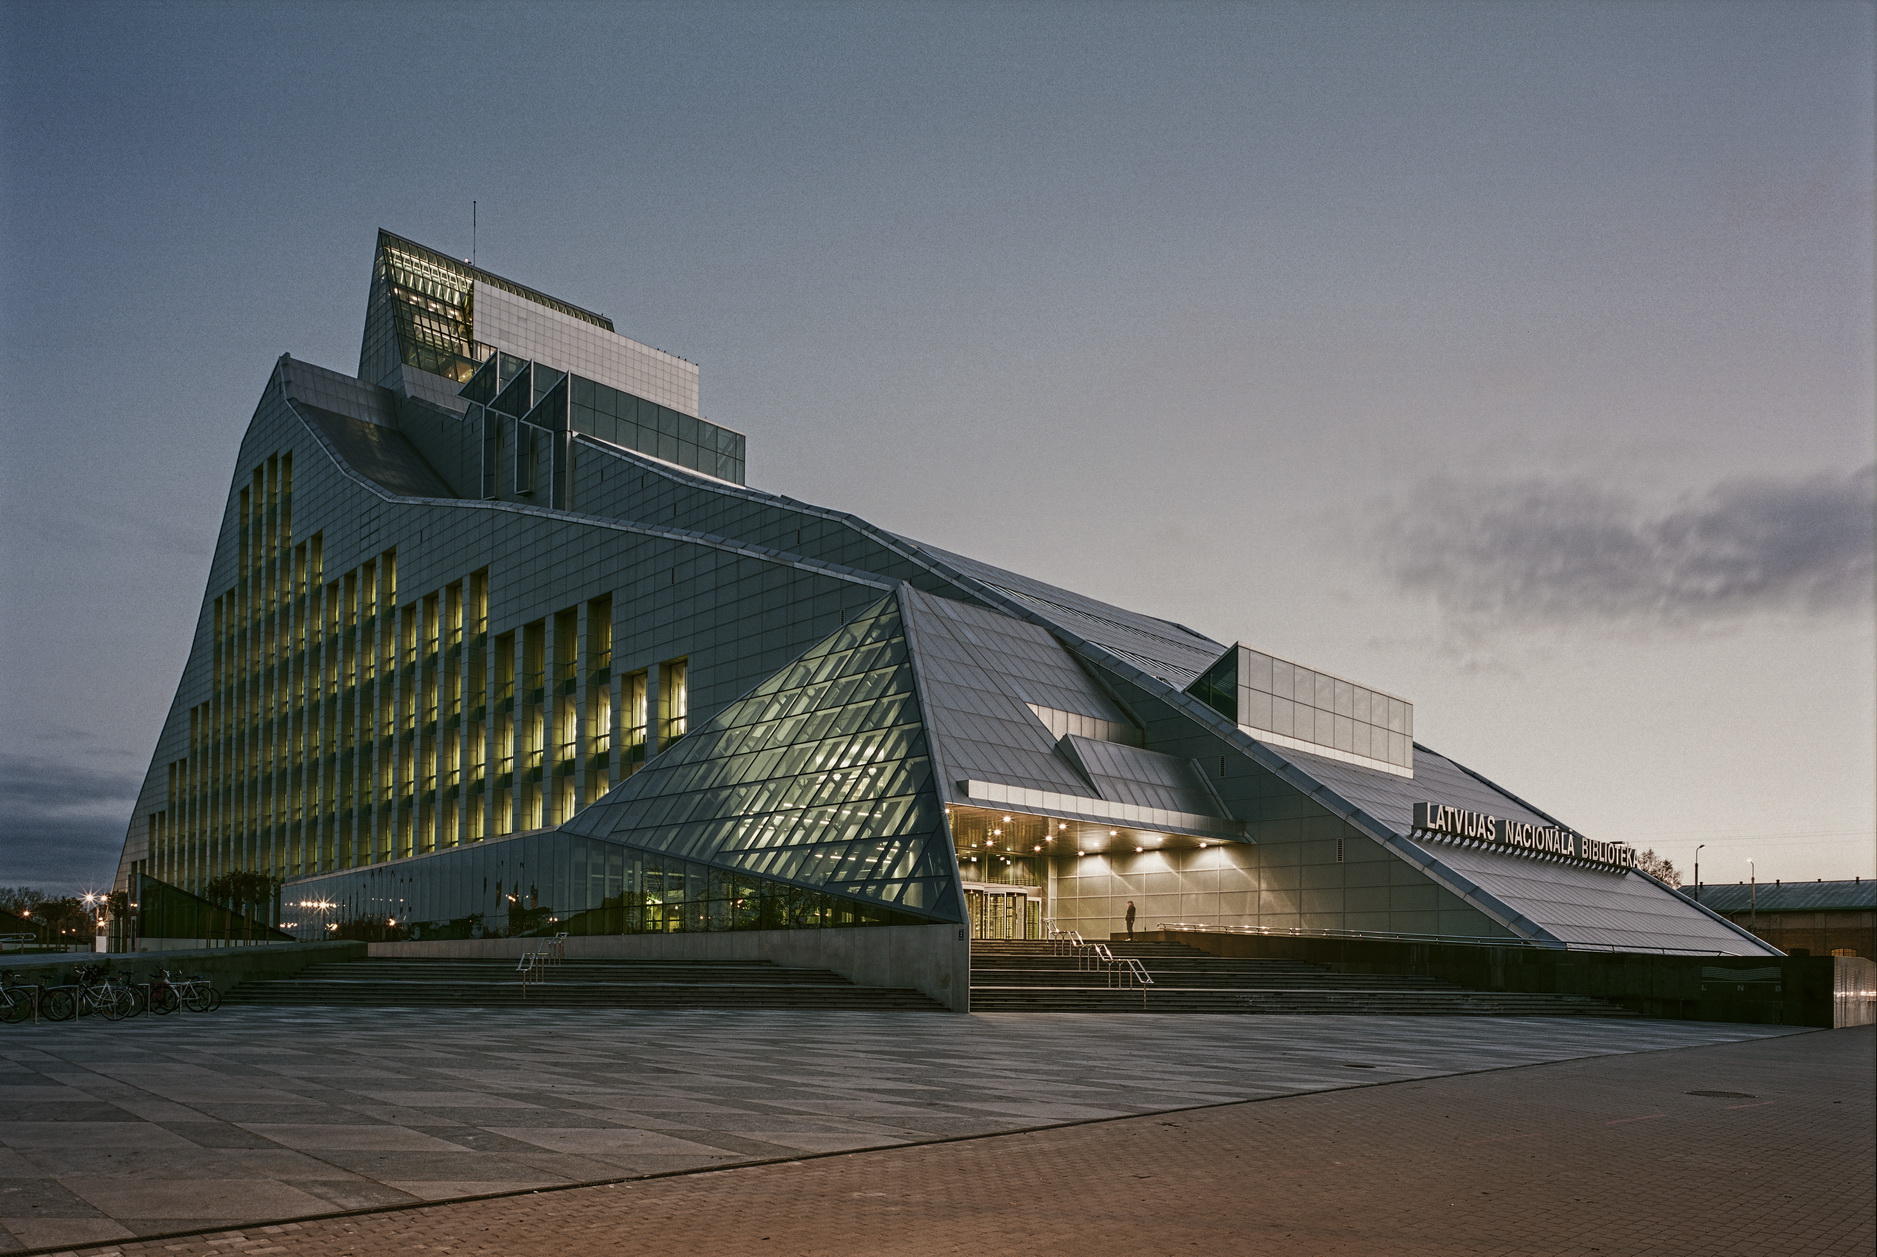 National Library of Latvia, Location of ELAG 2020; Photograph by Indrikis Sturmanis